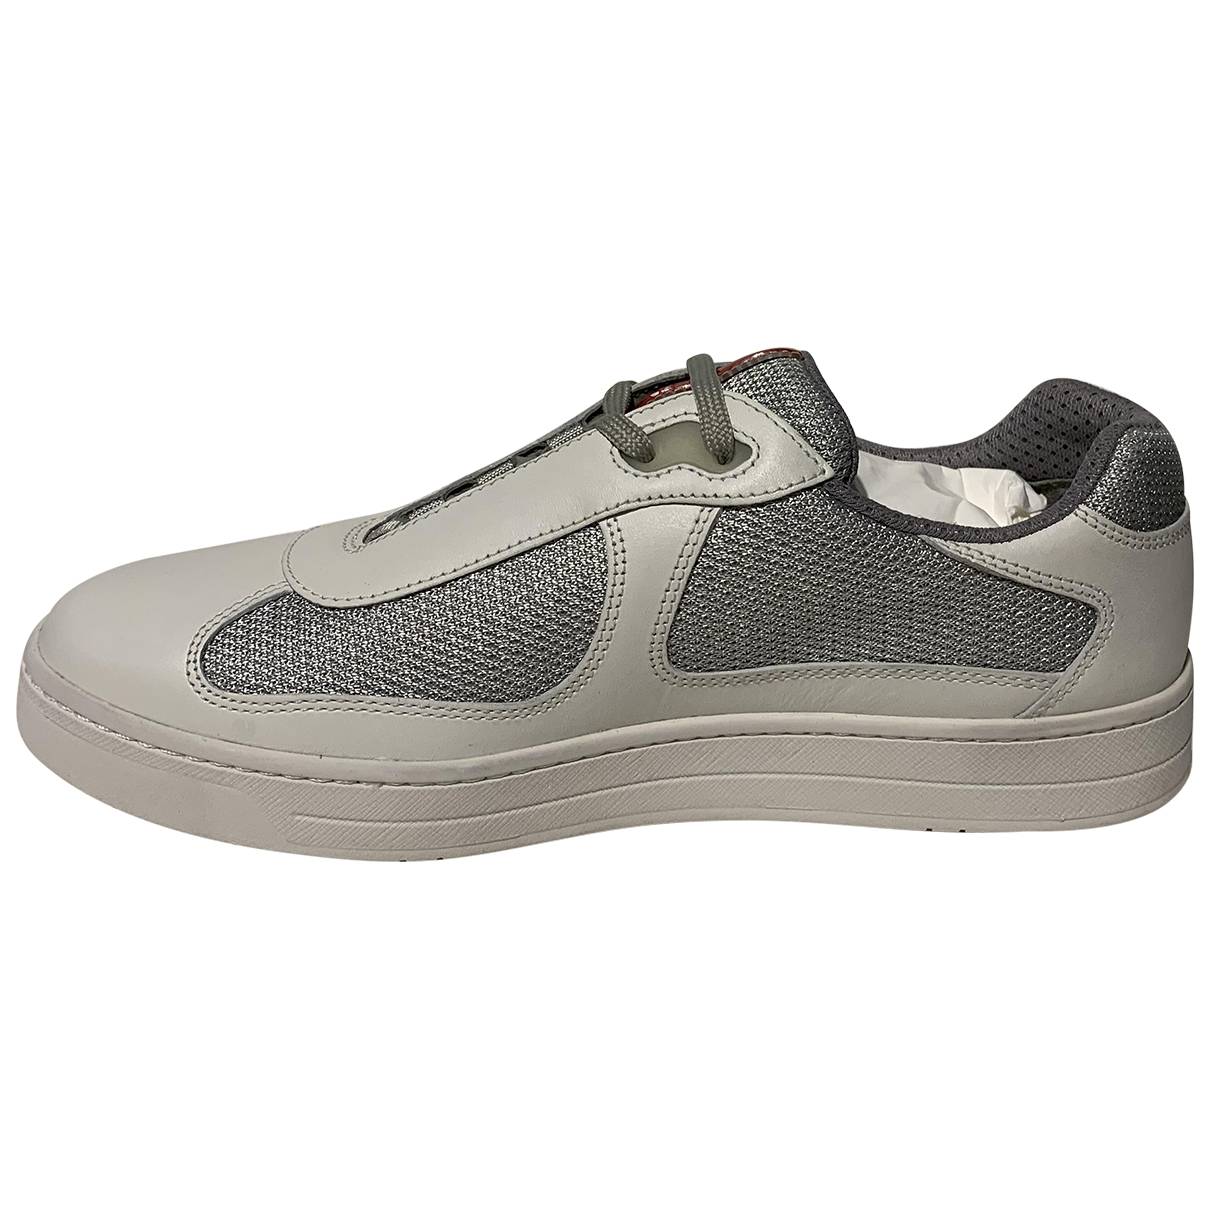 Prada \N White Leather Trainers for Men 6.5 US